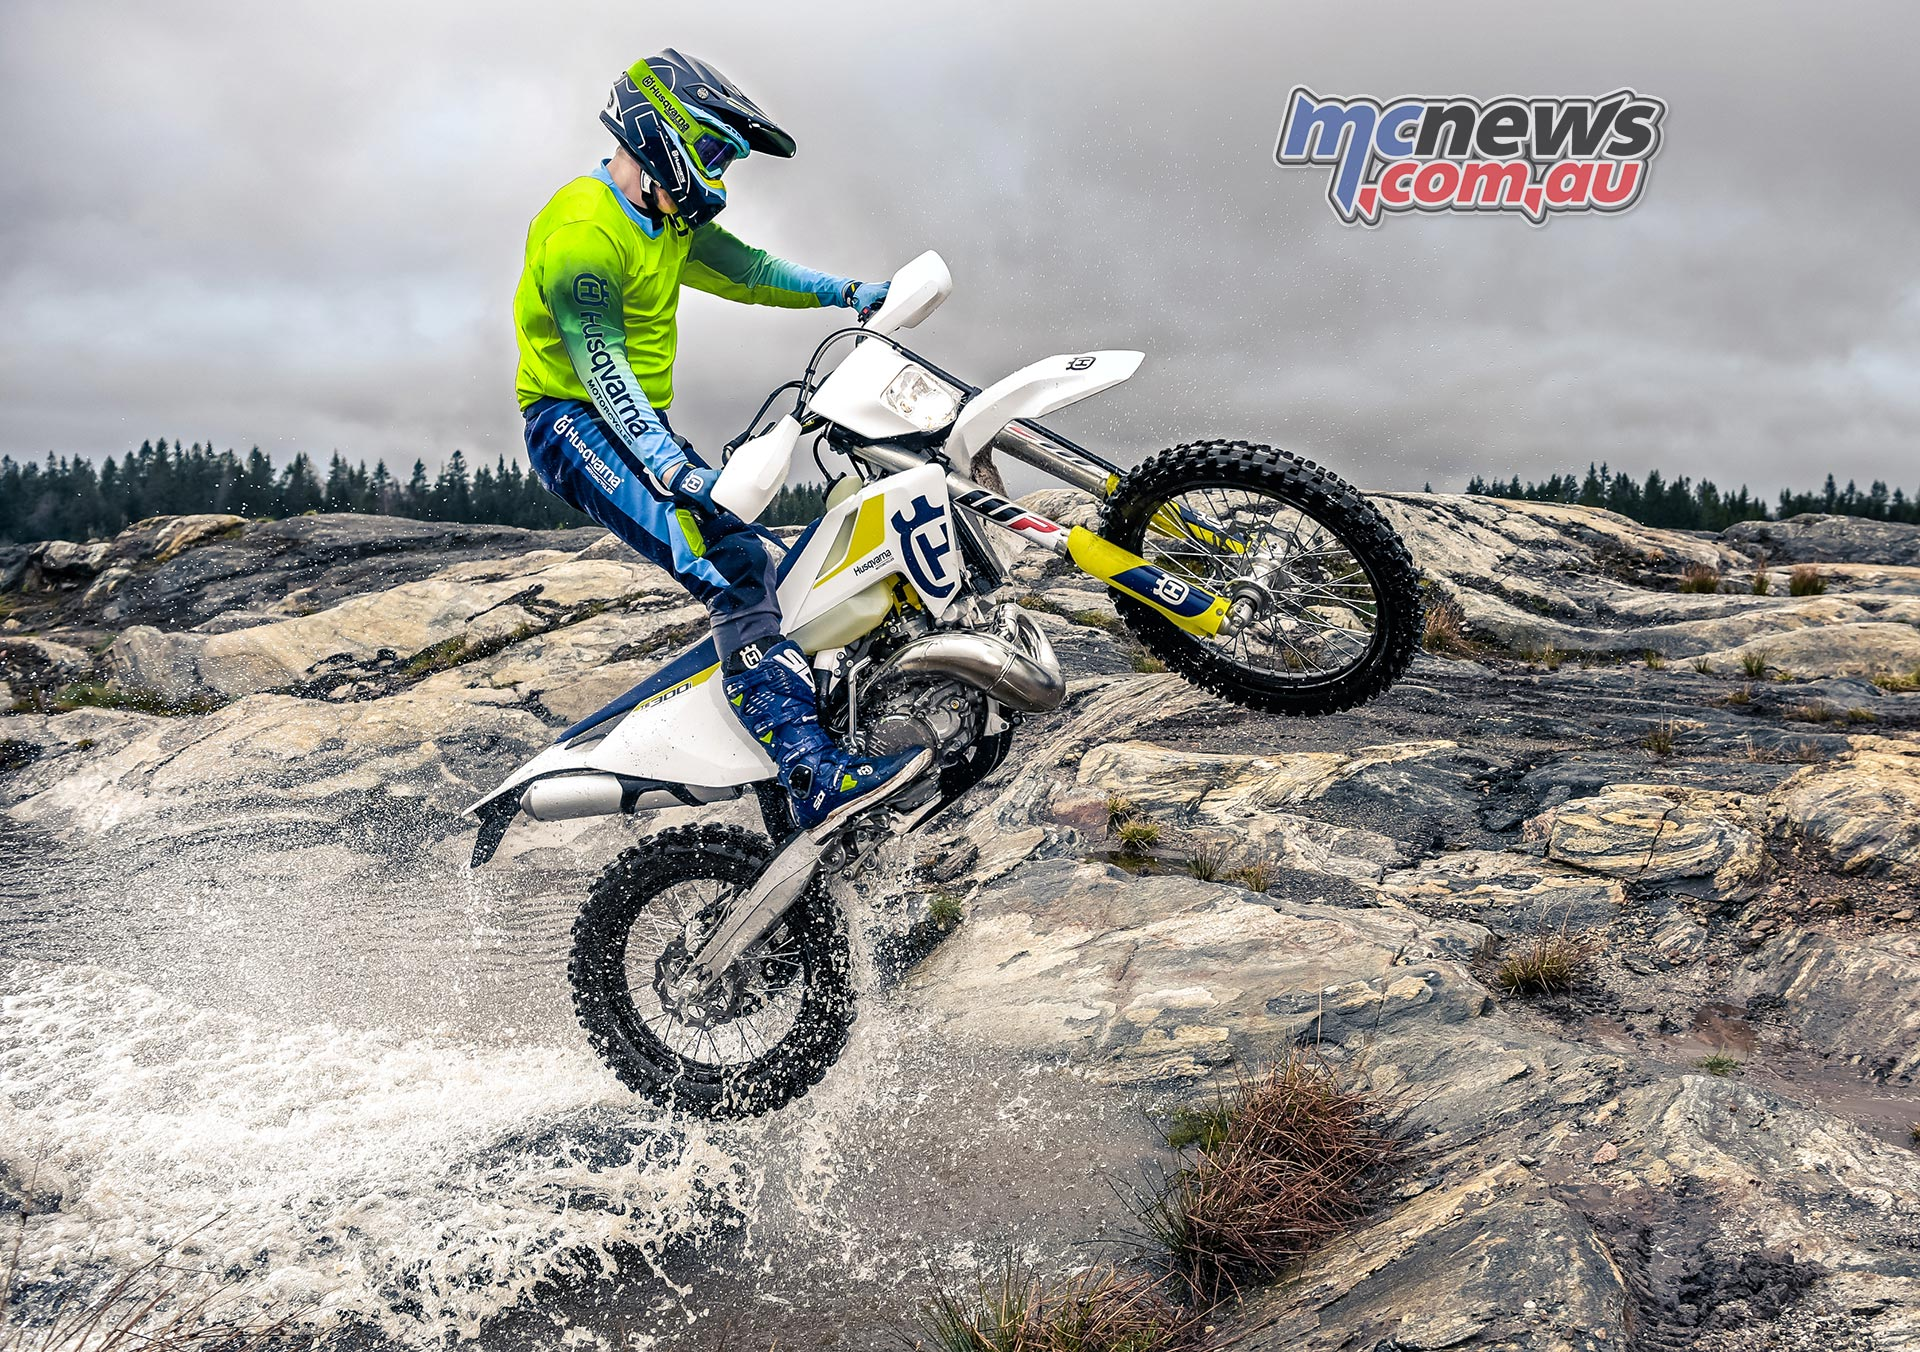 2019 Husqvarna Enduro Range and upgrade details | MCNews com au